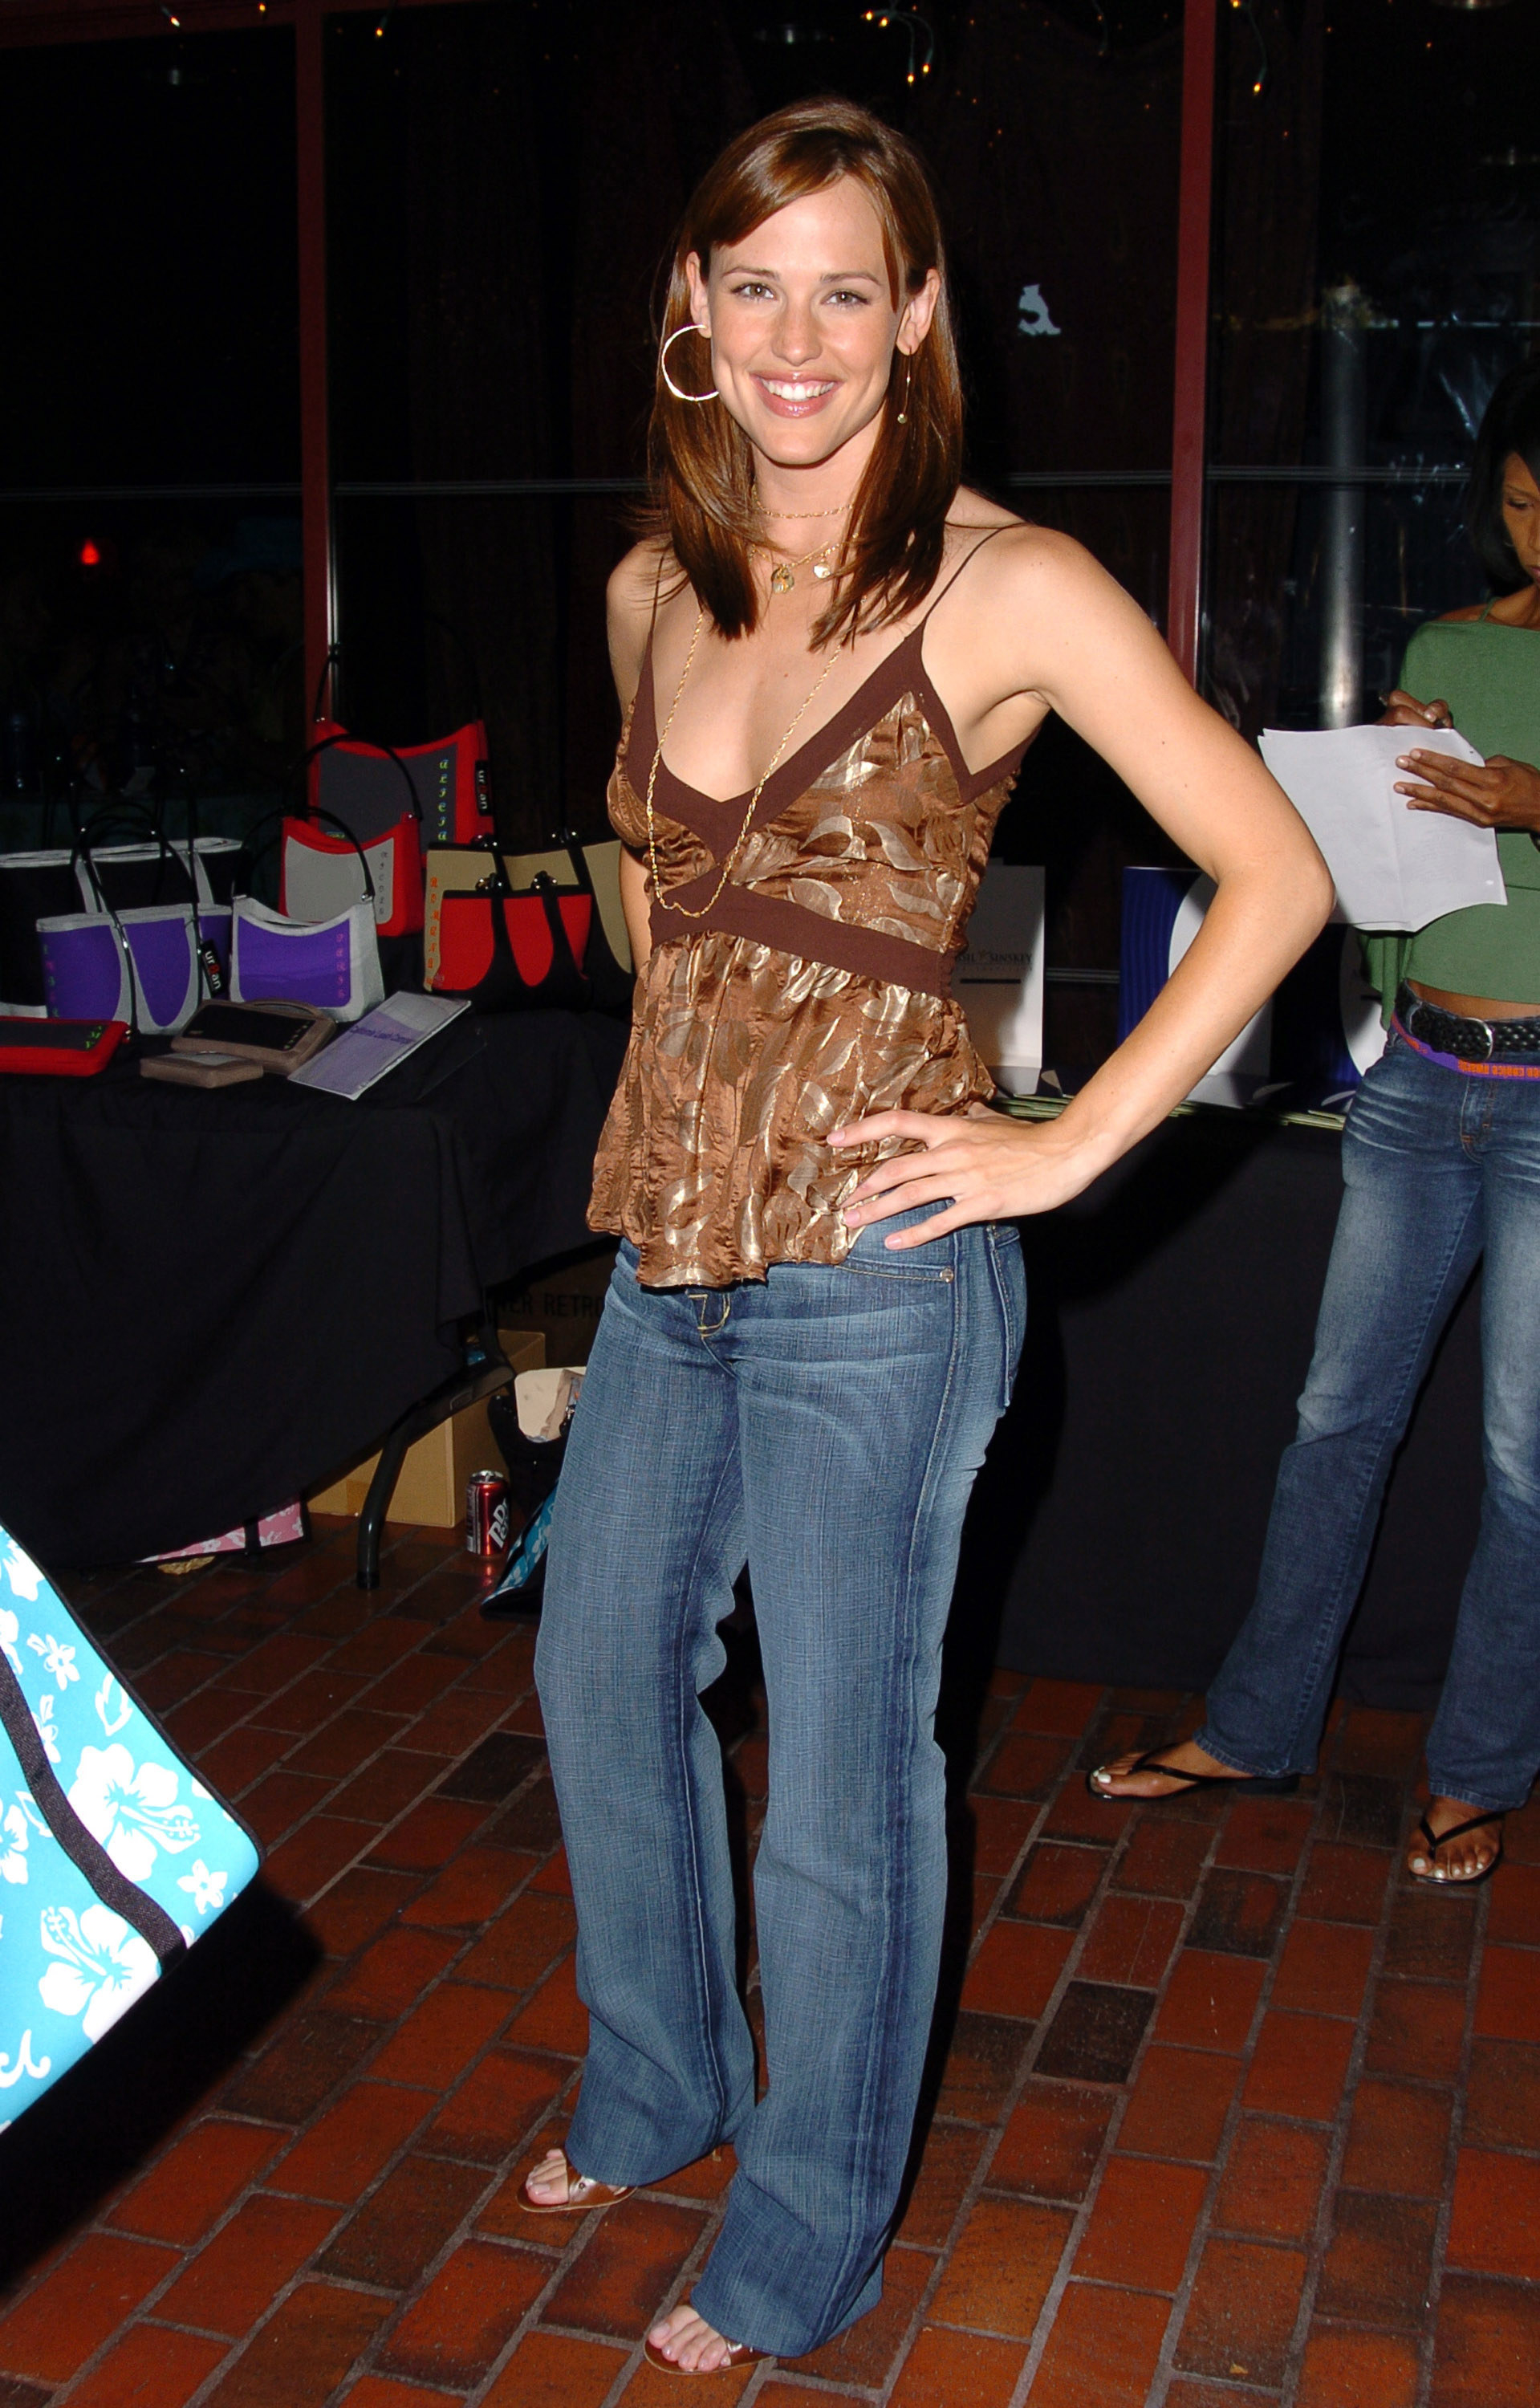 Jennifer wears a shimmery camisole with jeans, hoop earrings, and sandals.